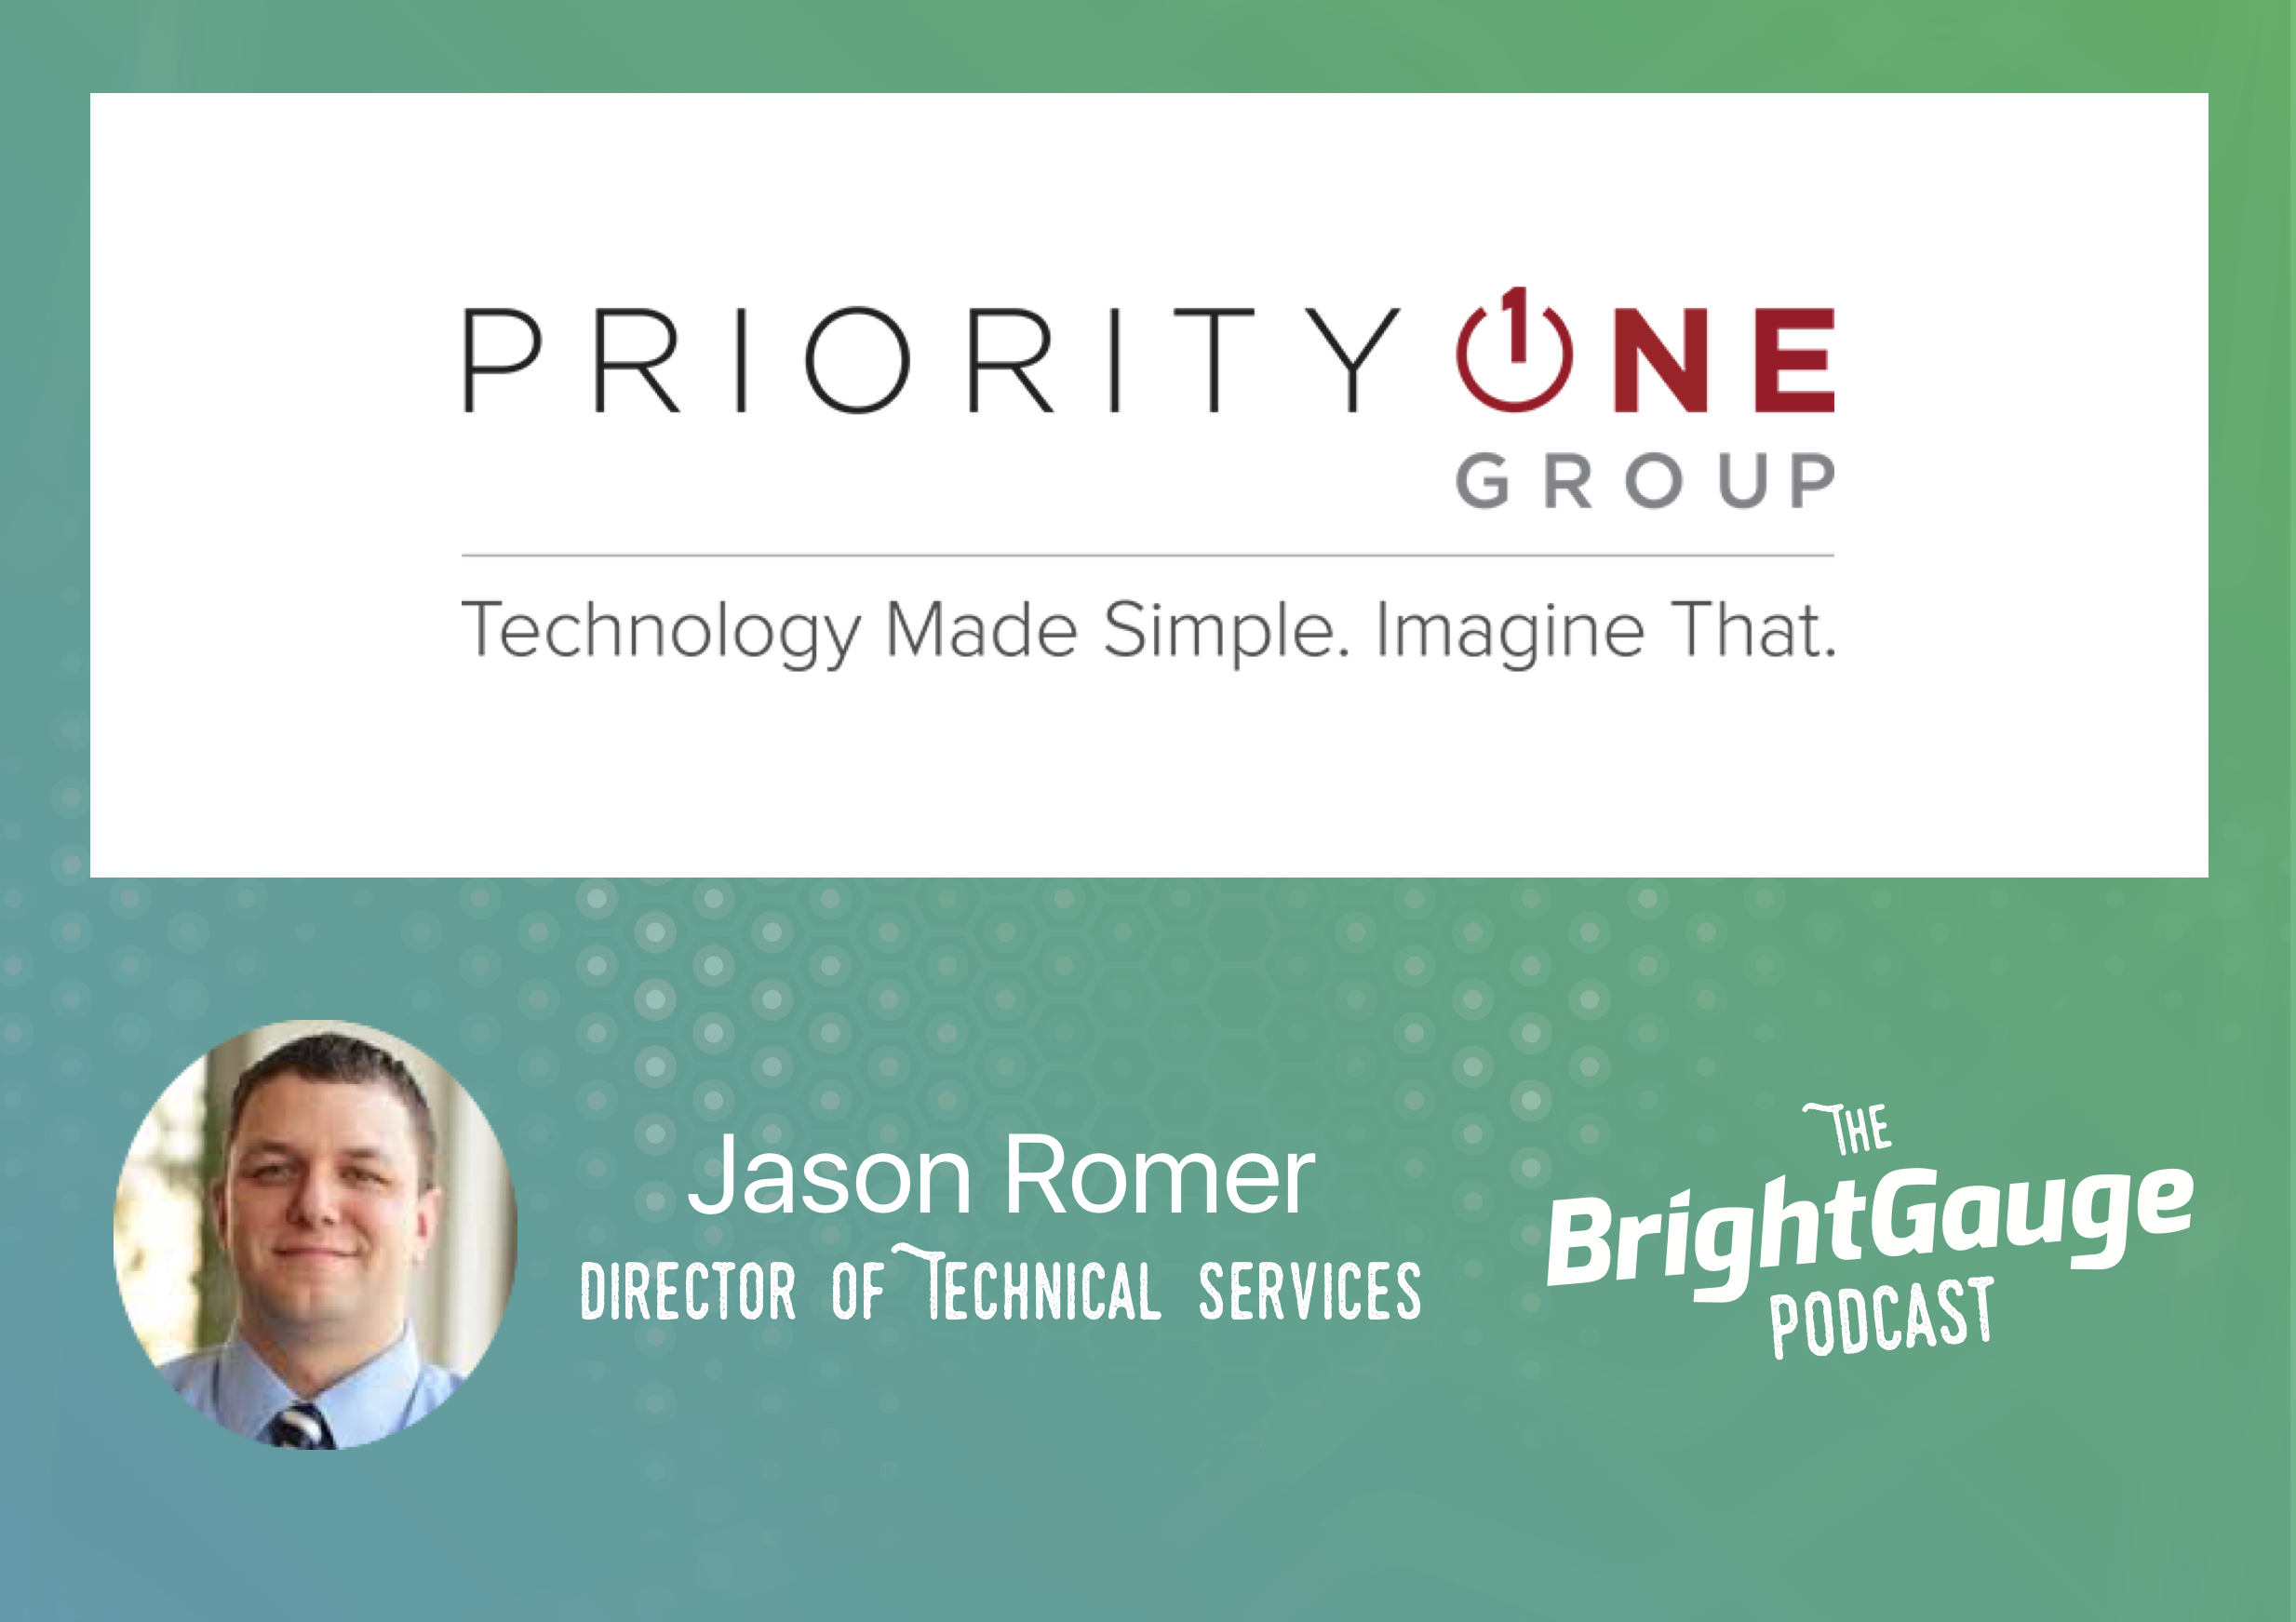 [Podcast]: Episode 15 with Jason Romer of PriorityOne Group